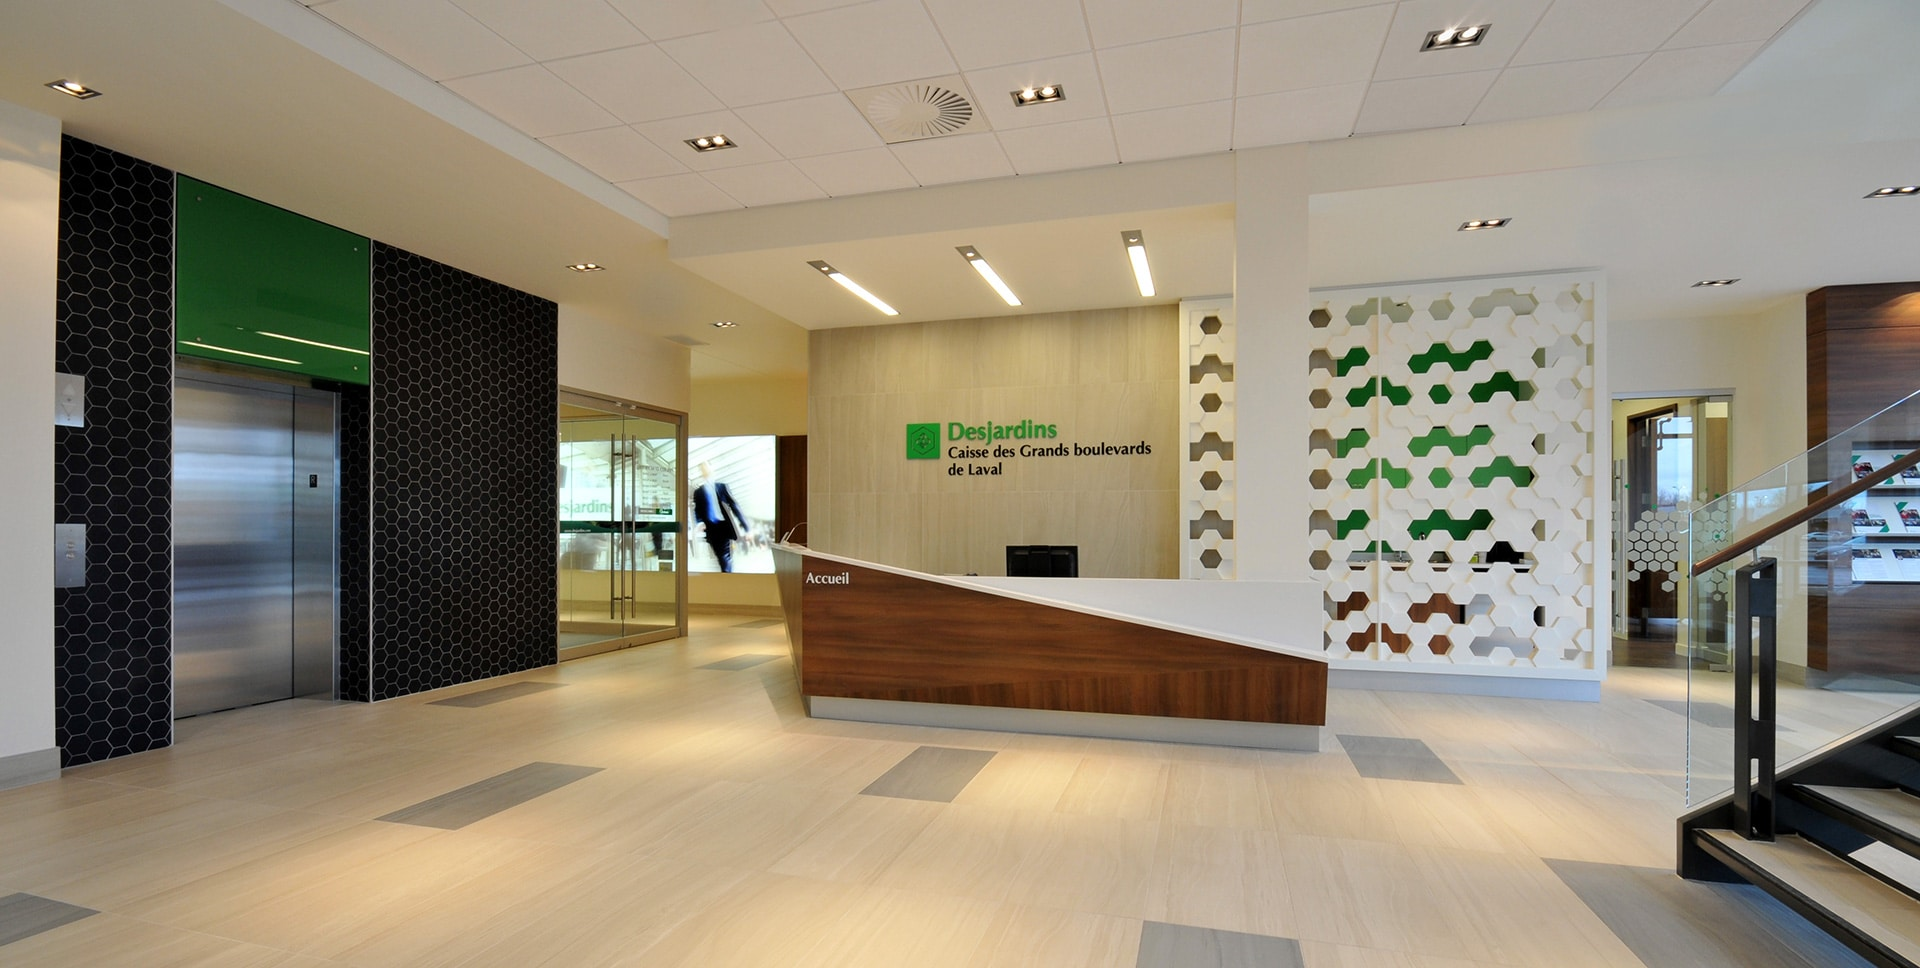 Reception and elevator at Desjardins in Laval designed by VAD